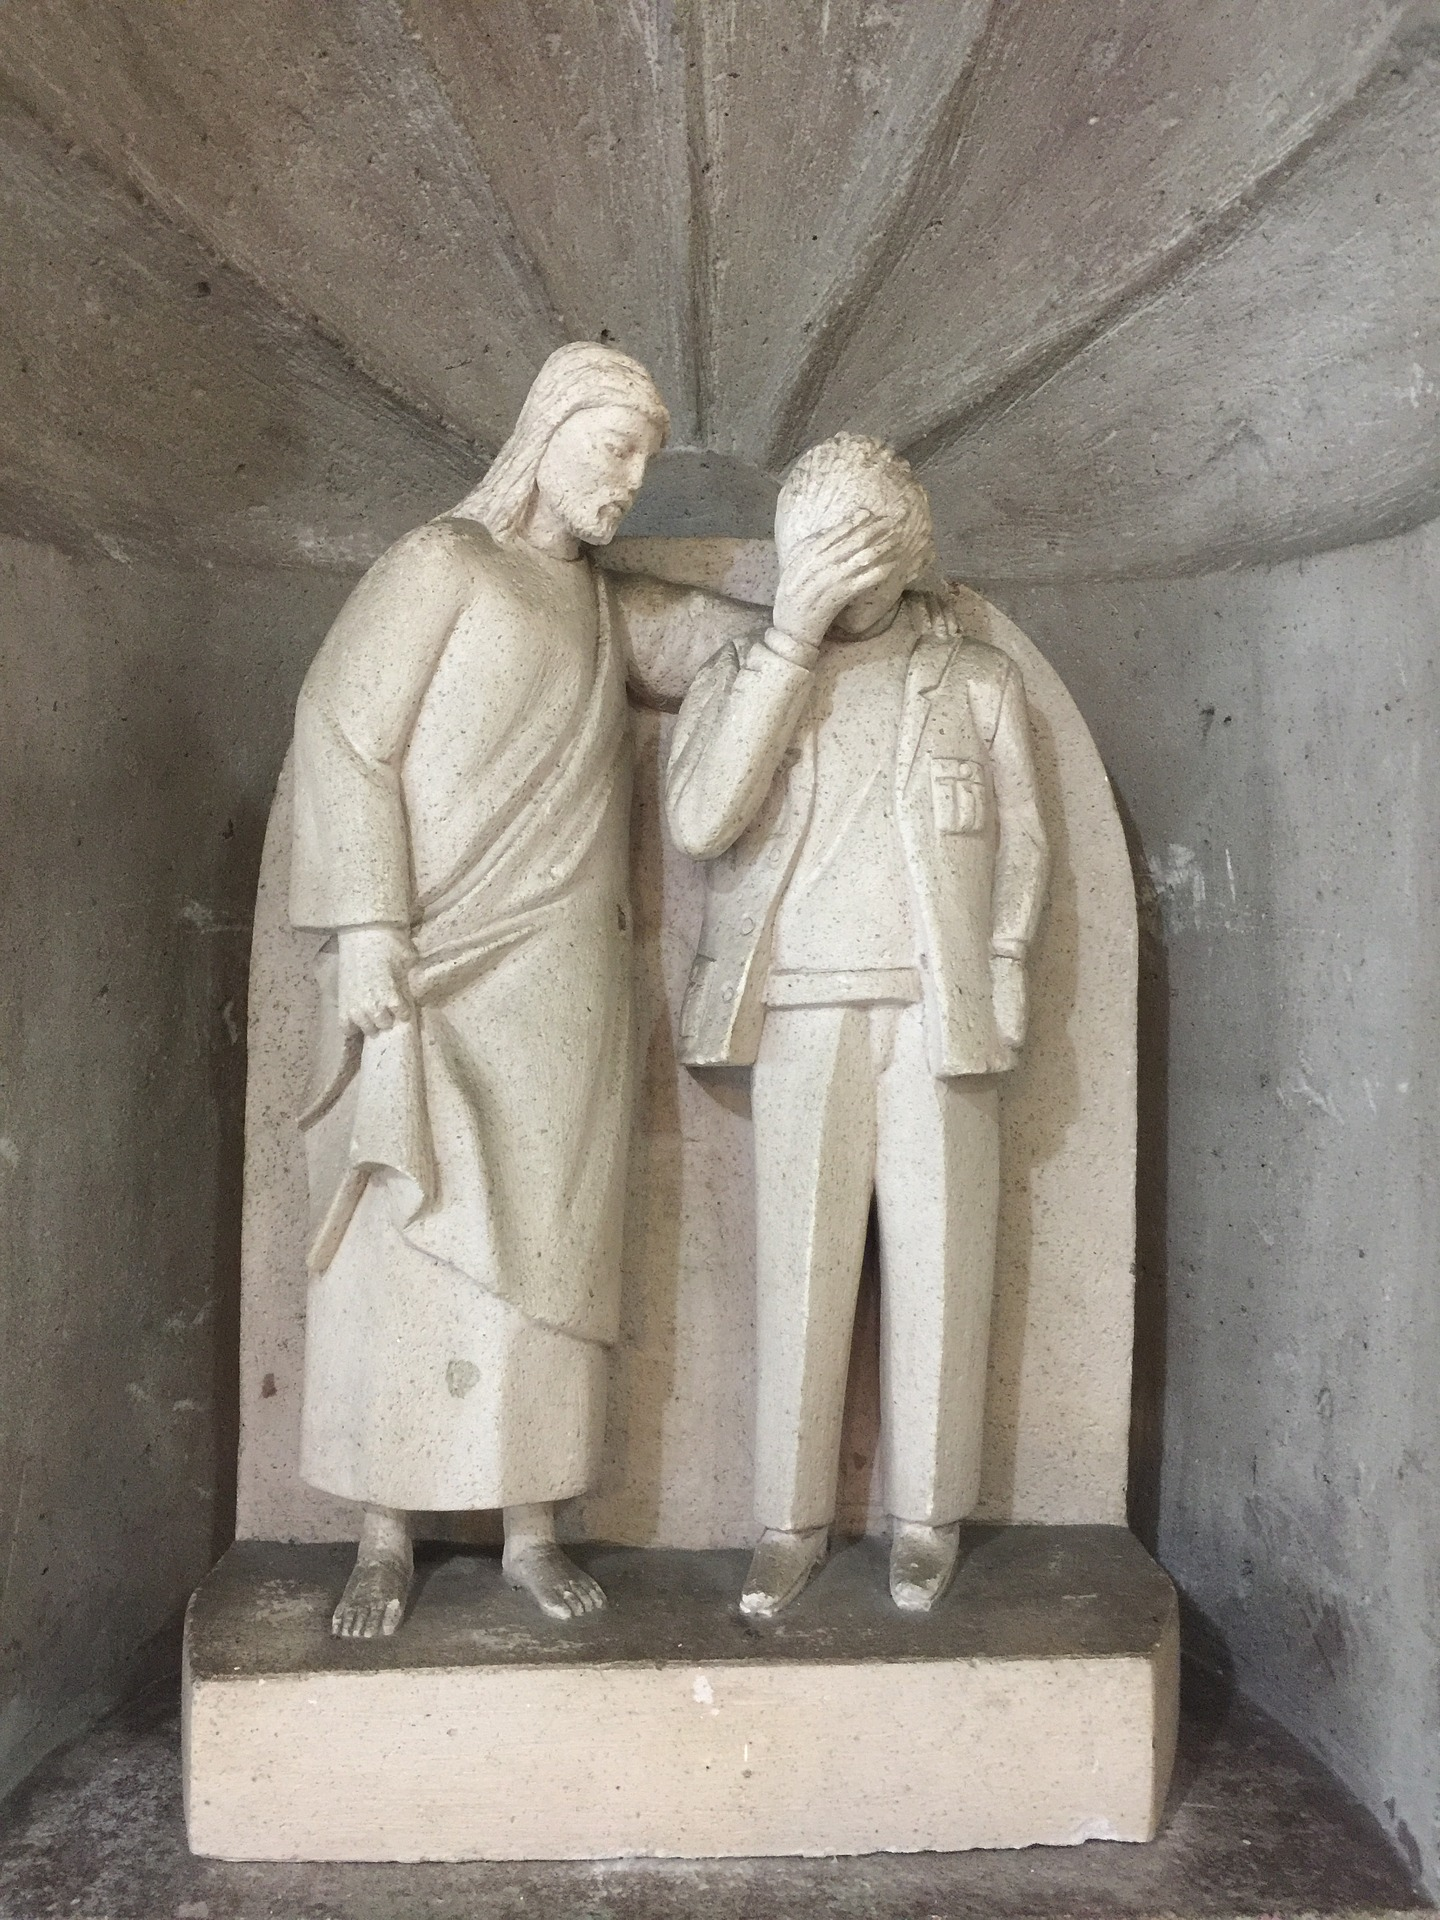 Sculpture of Prodigal Son